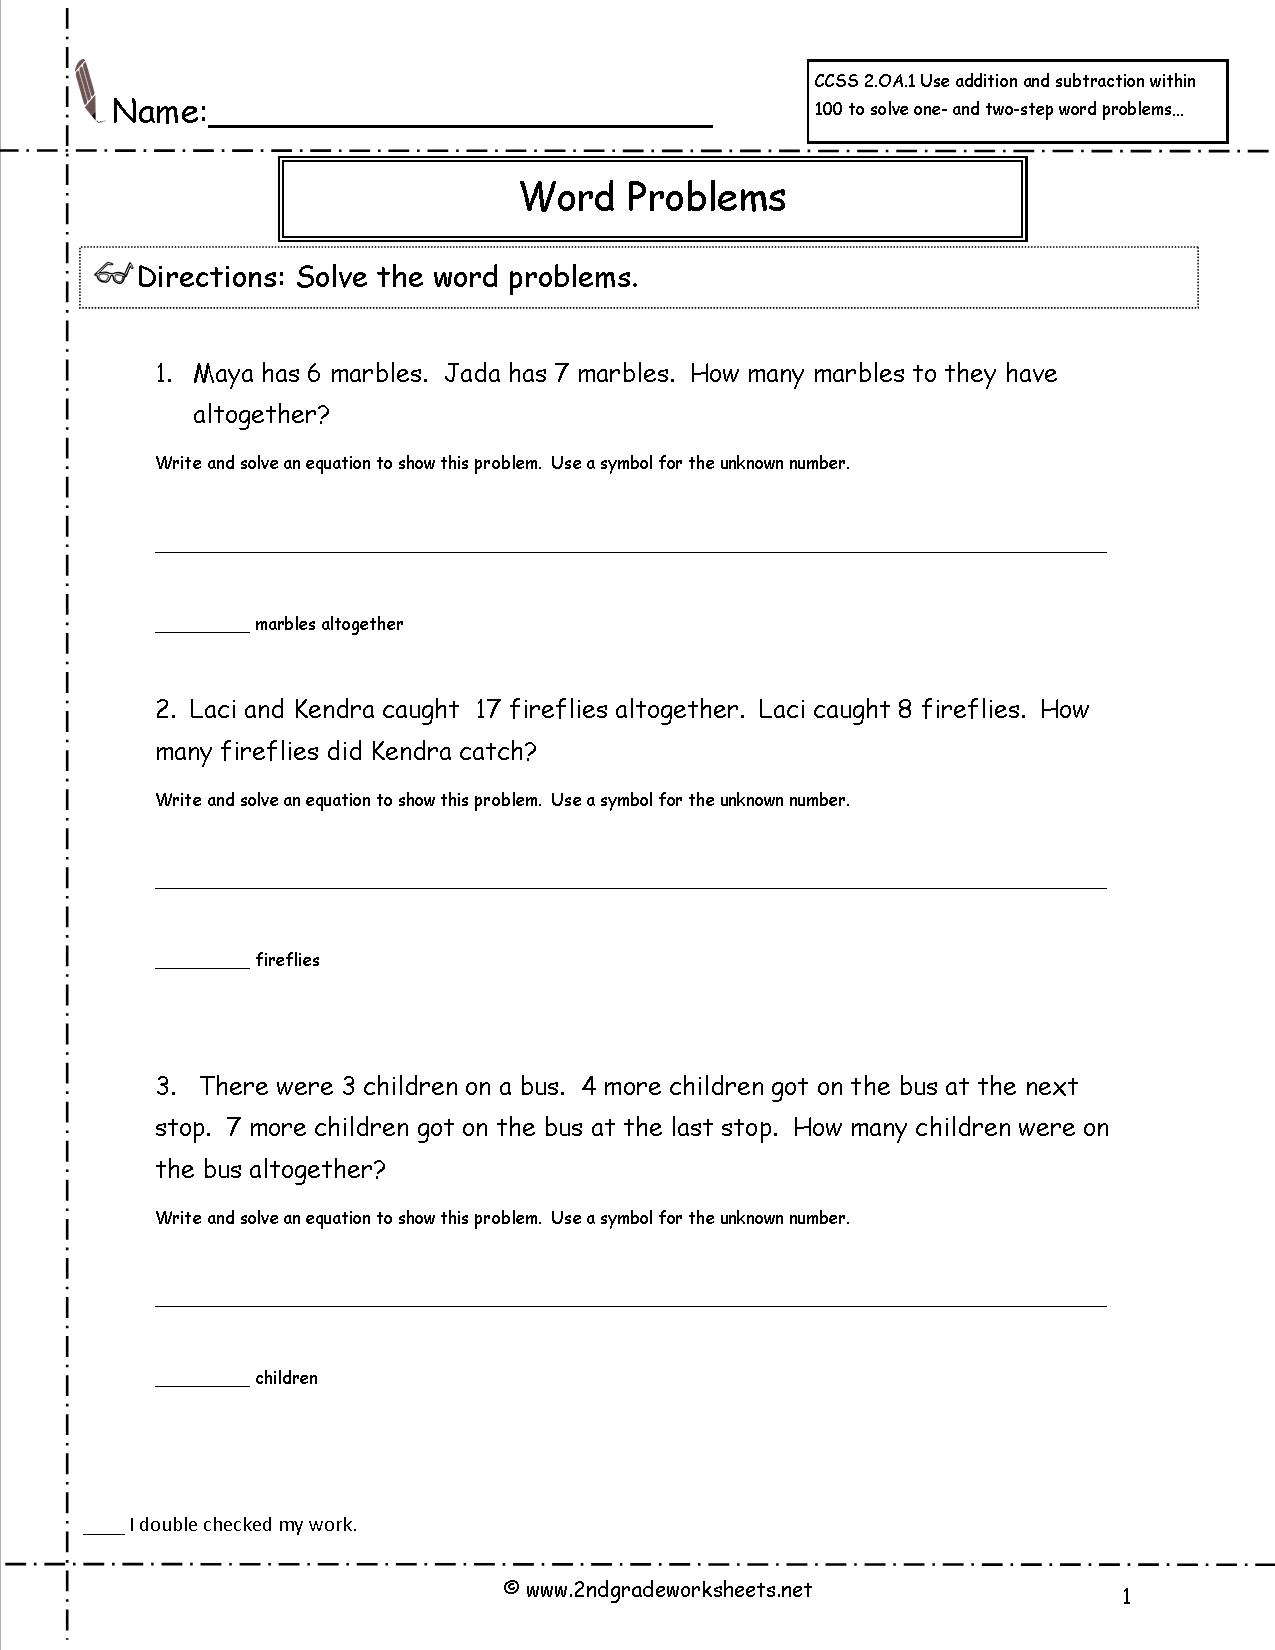 Grade 2 Math Word Problems Printable Worksheets